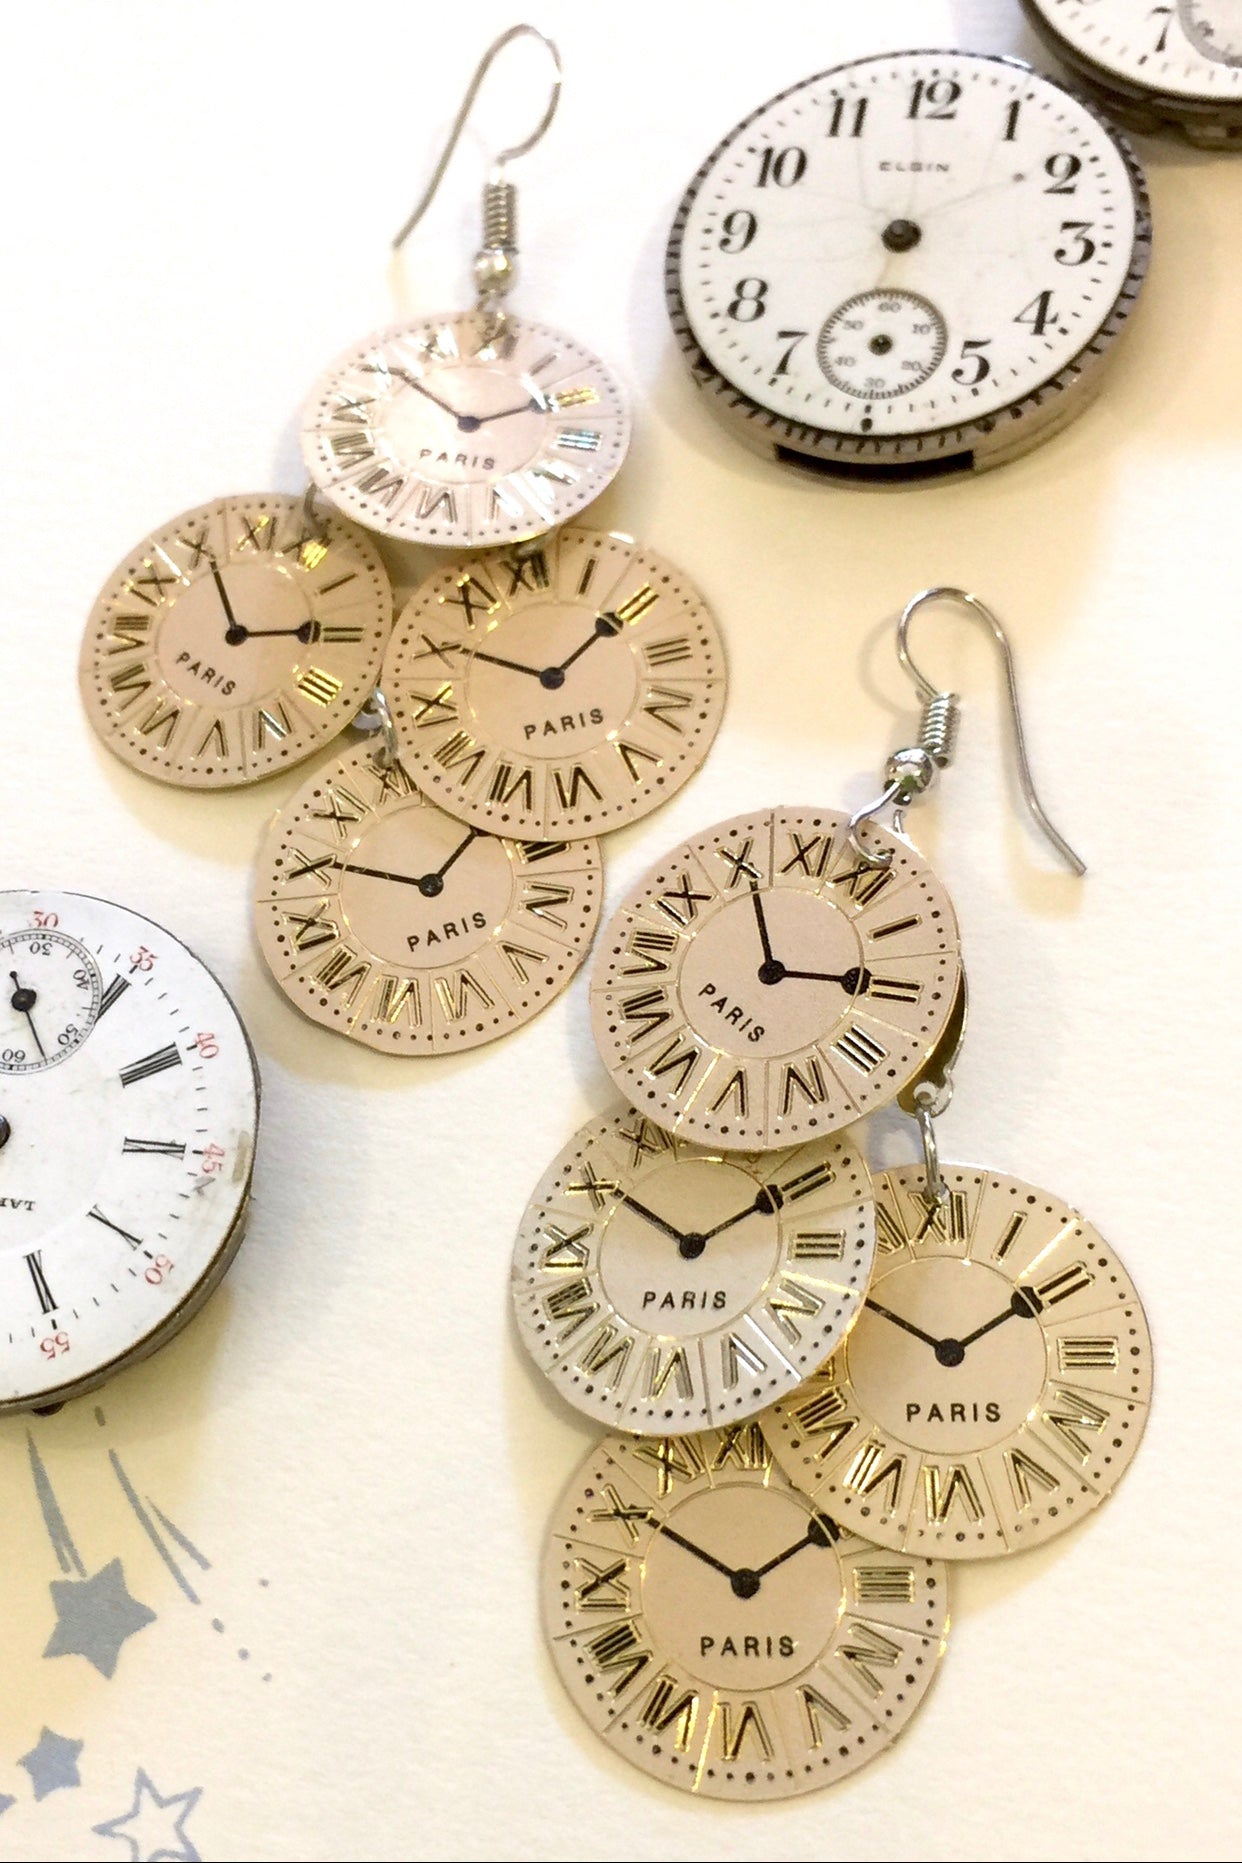 Earrings Times Up, Retro Watch Face Style earrings very lightweight